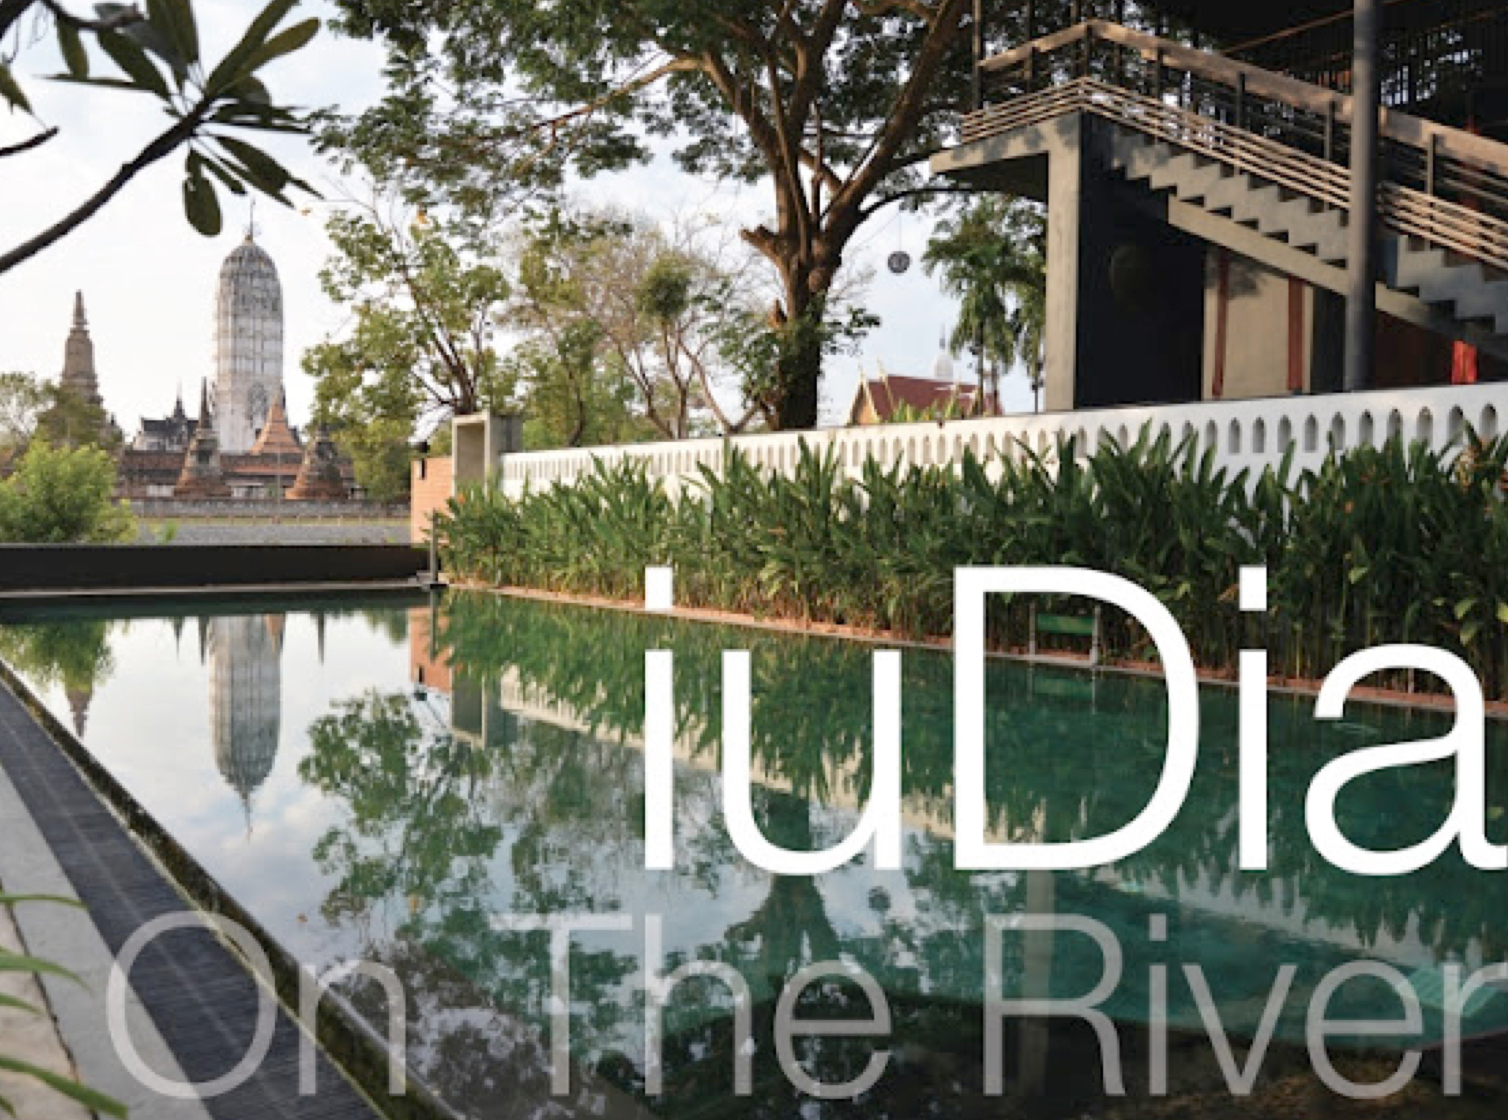 STAY iuDia On The River Experience The Tranquillity Of Old Siam (Thailand)